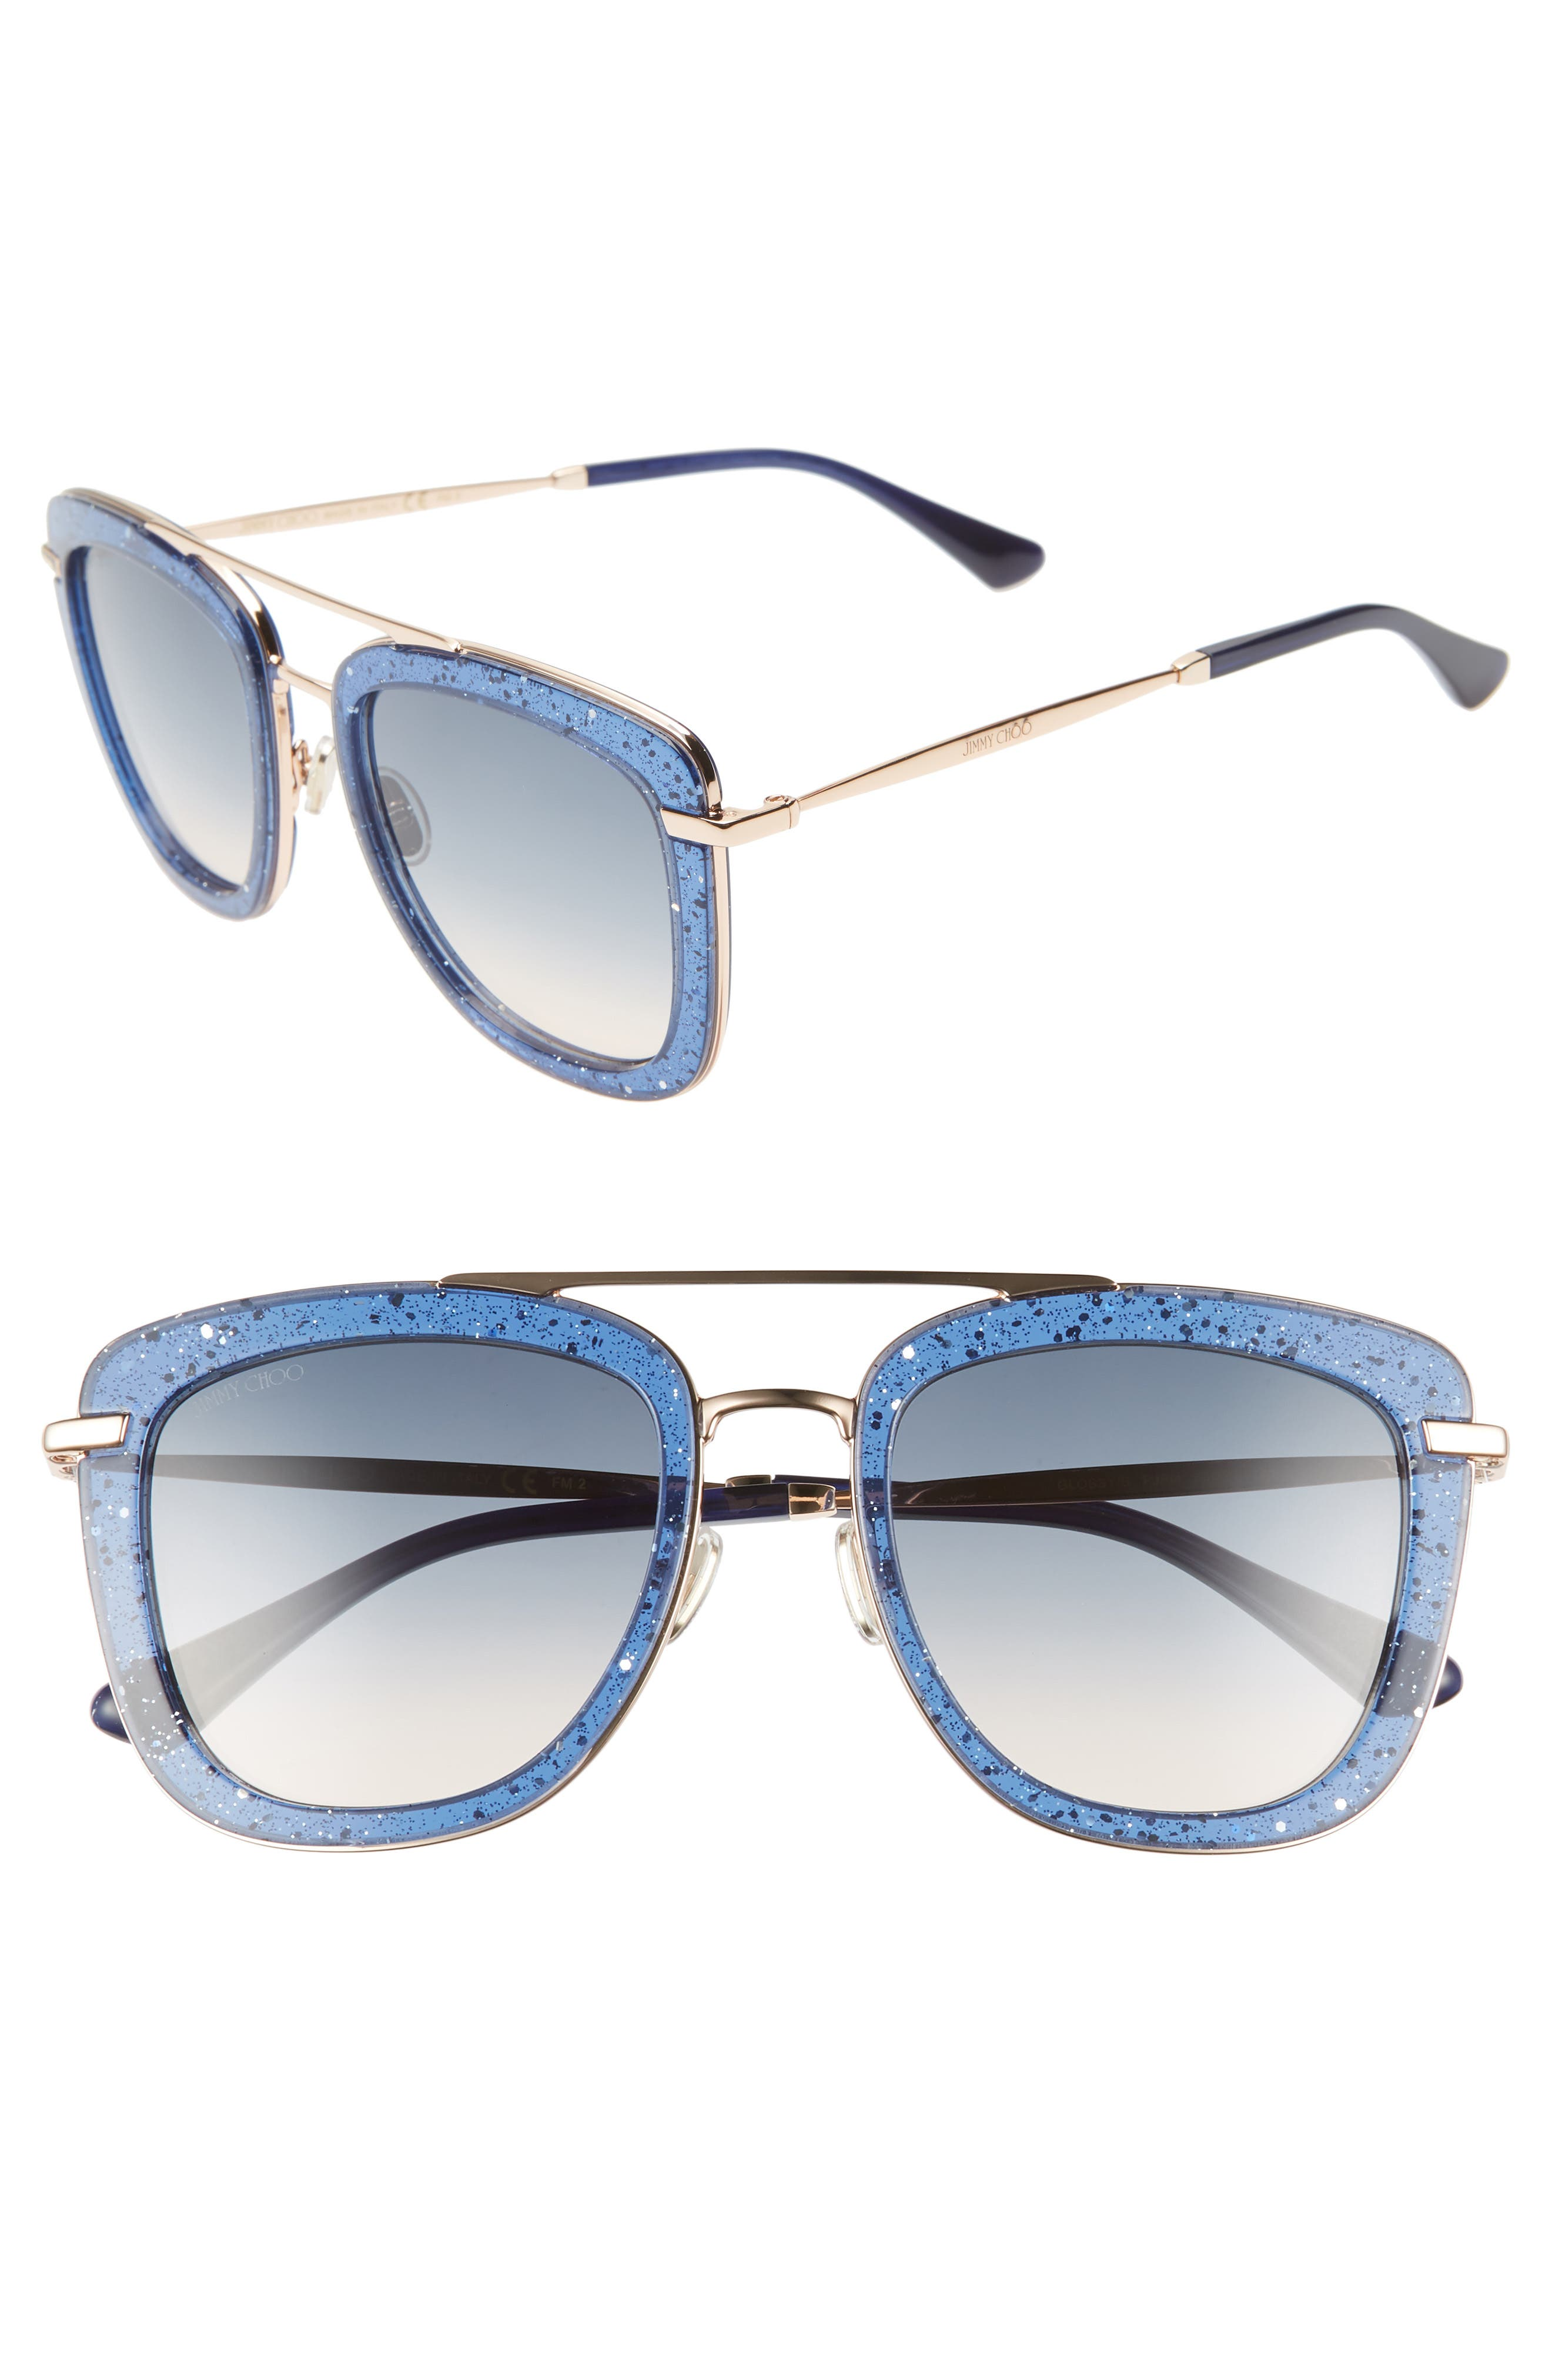 Jimmy Choo Glossy 5m Square Sunglasses - Blue